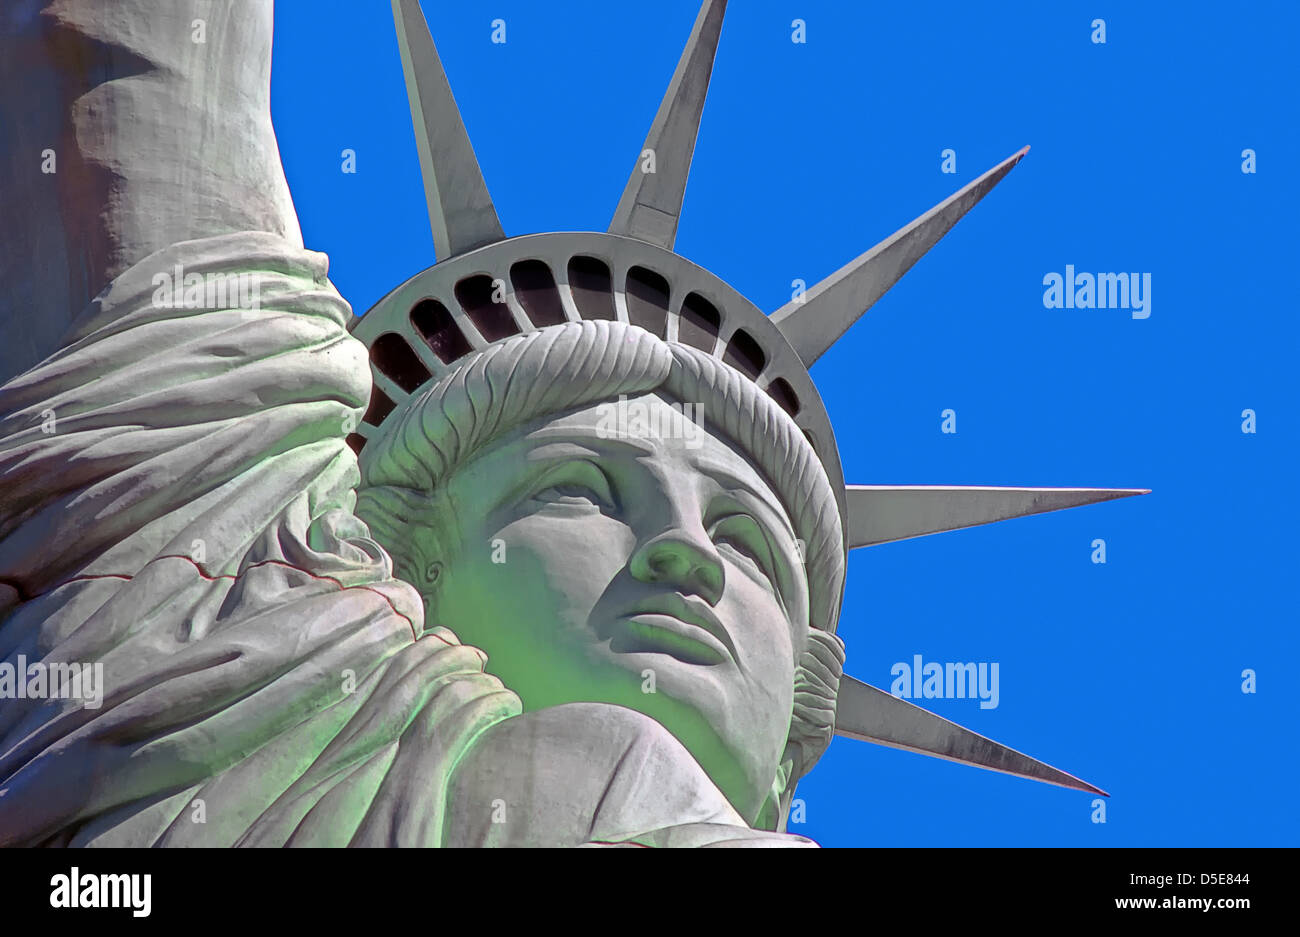 Huge copy of the Statue of Liberty, to be found outside the New York New York Hotel in Las Vegas, Nevada, USA. Stock Photo